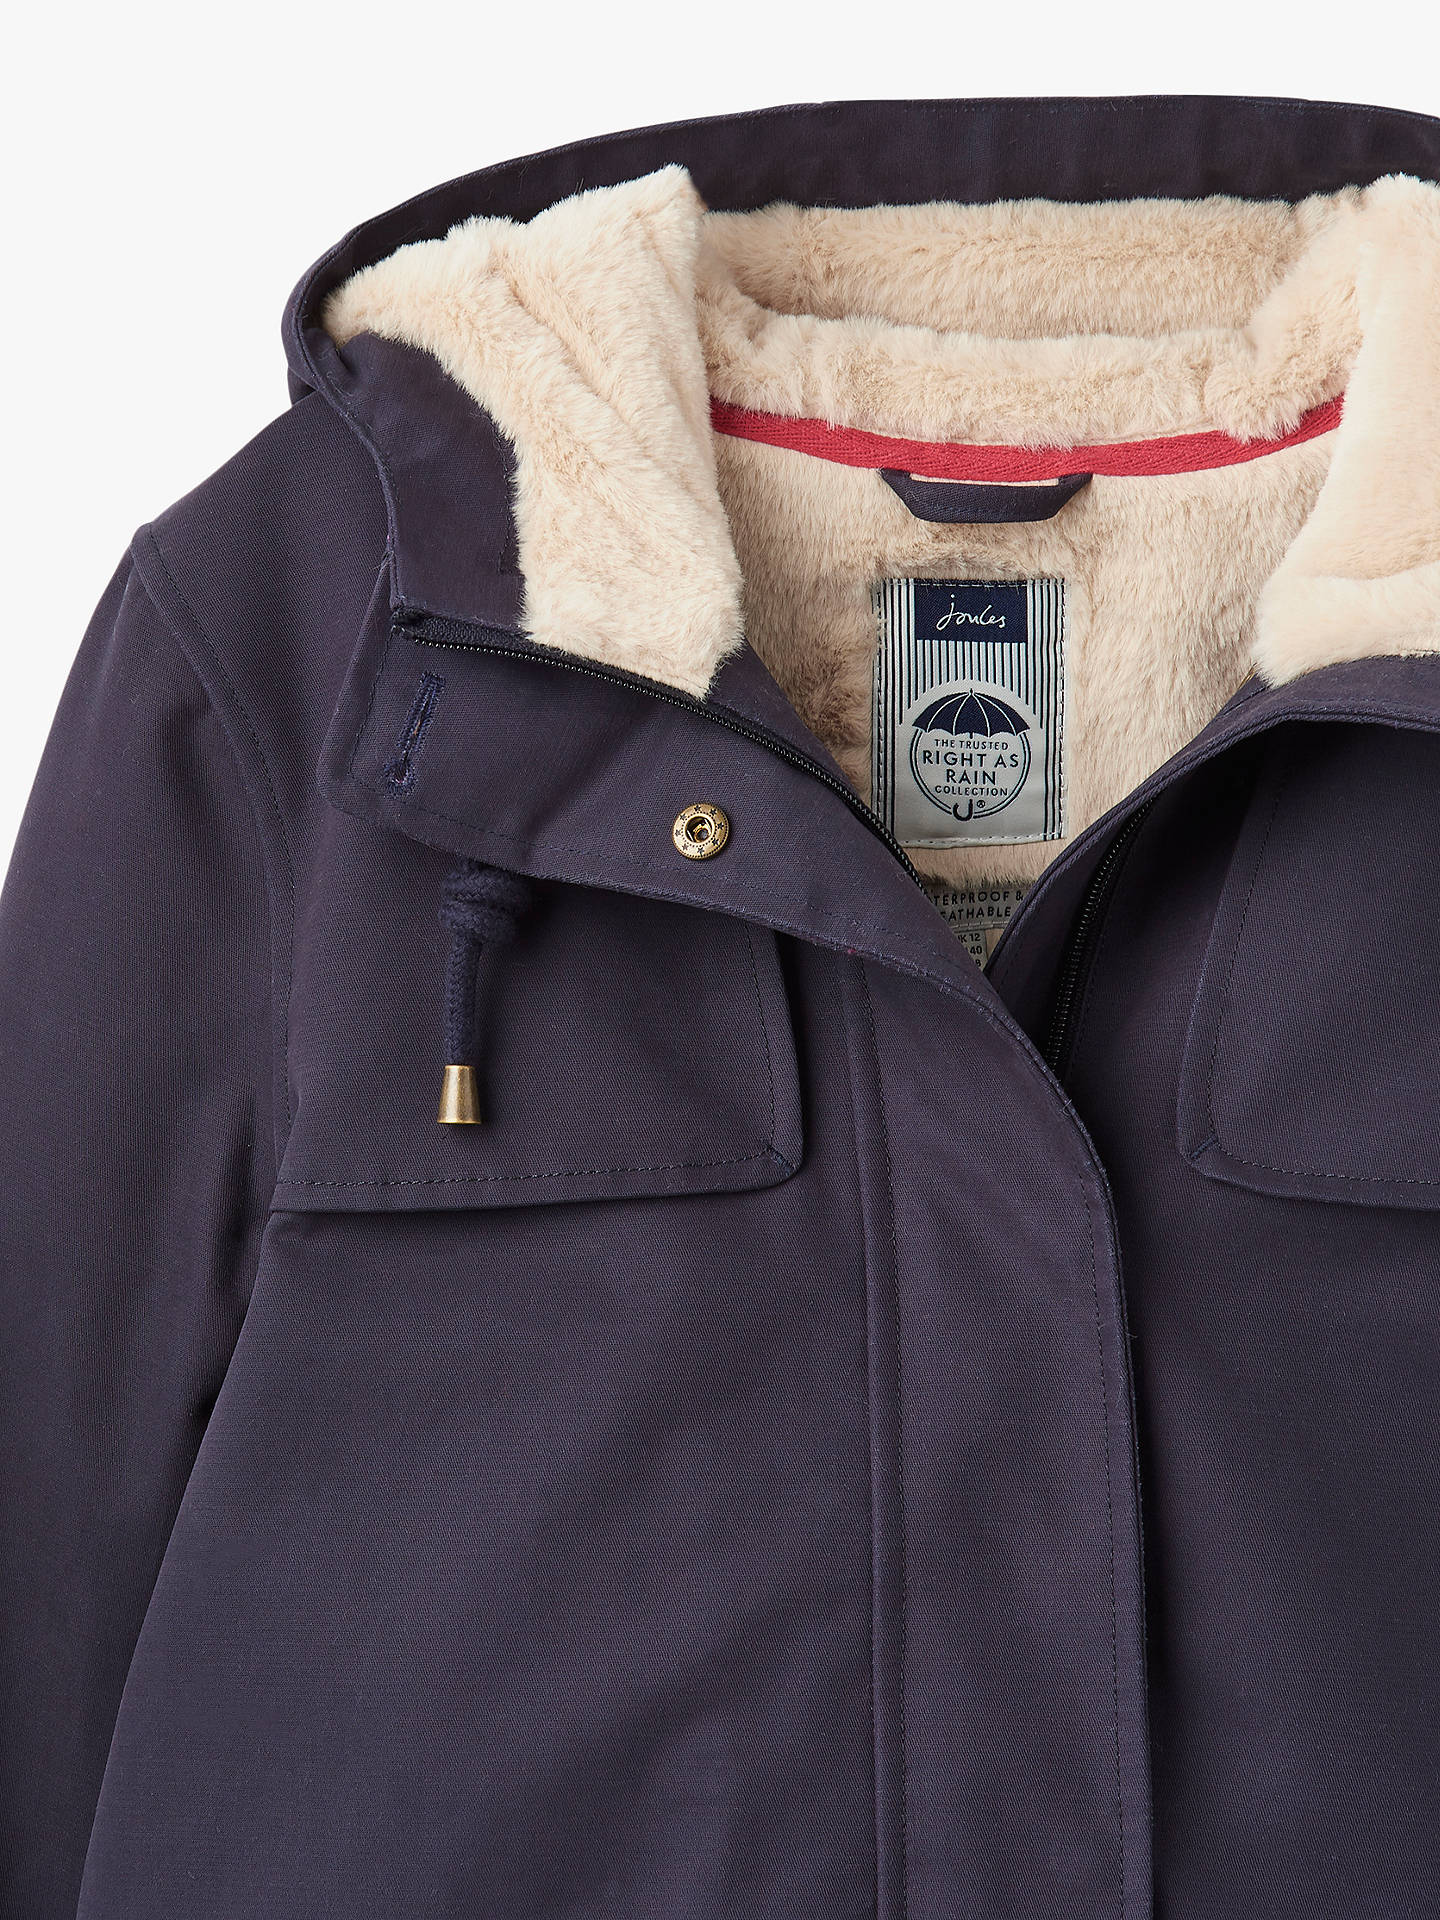 53d4745e9 Buy Joules Coast Cosy Sherpa Lined Jacket, Marine Navy, 12 Online at  johnlewis.